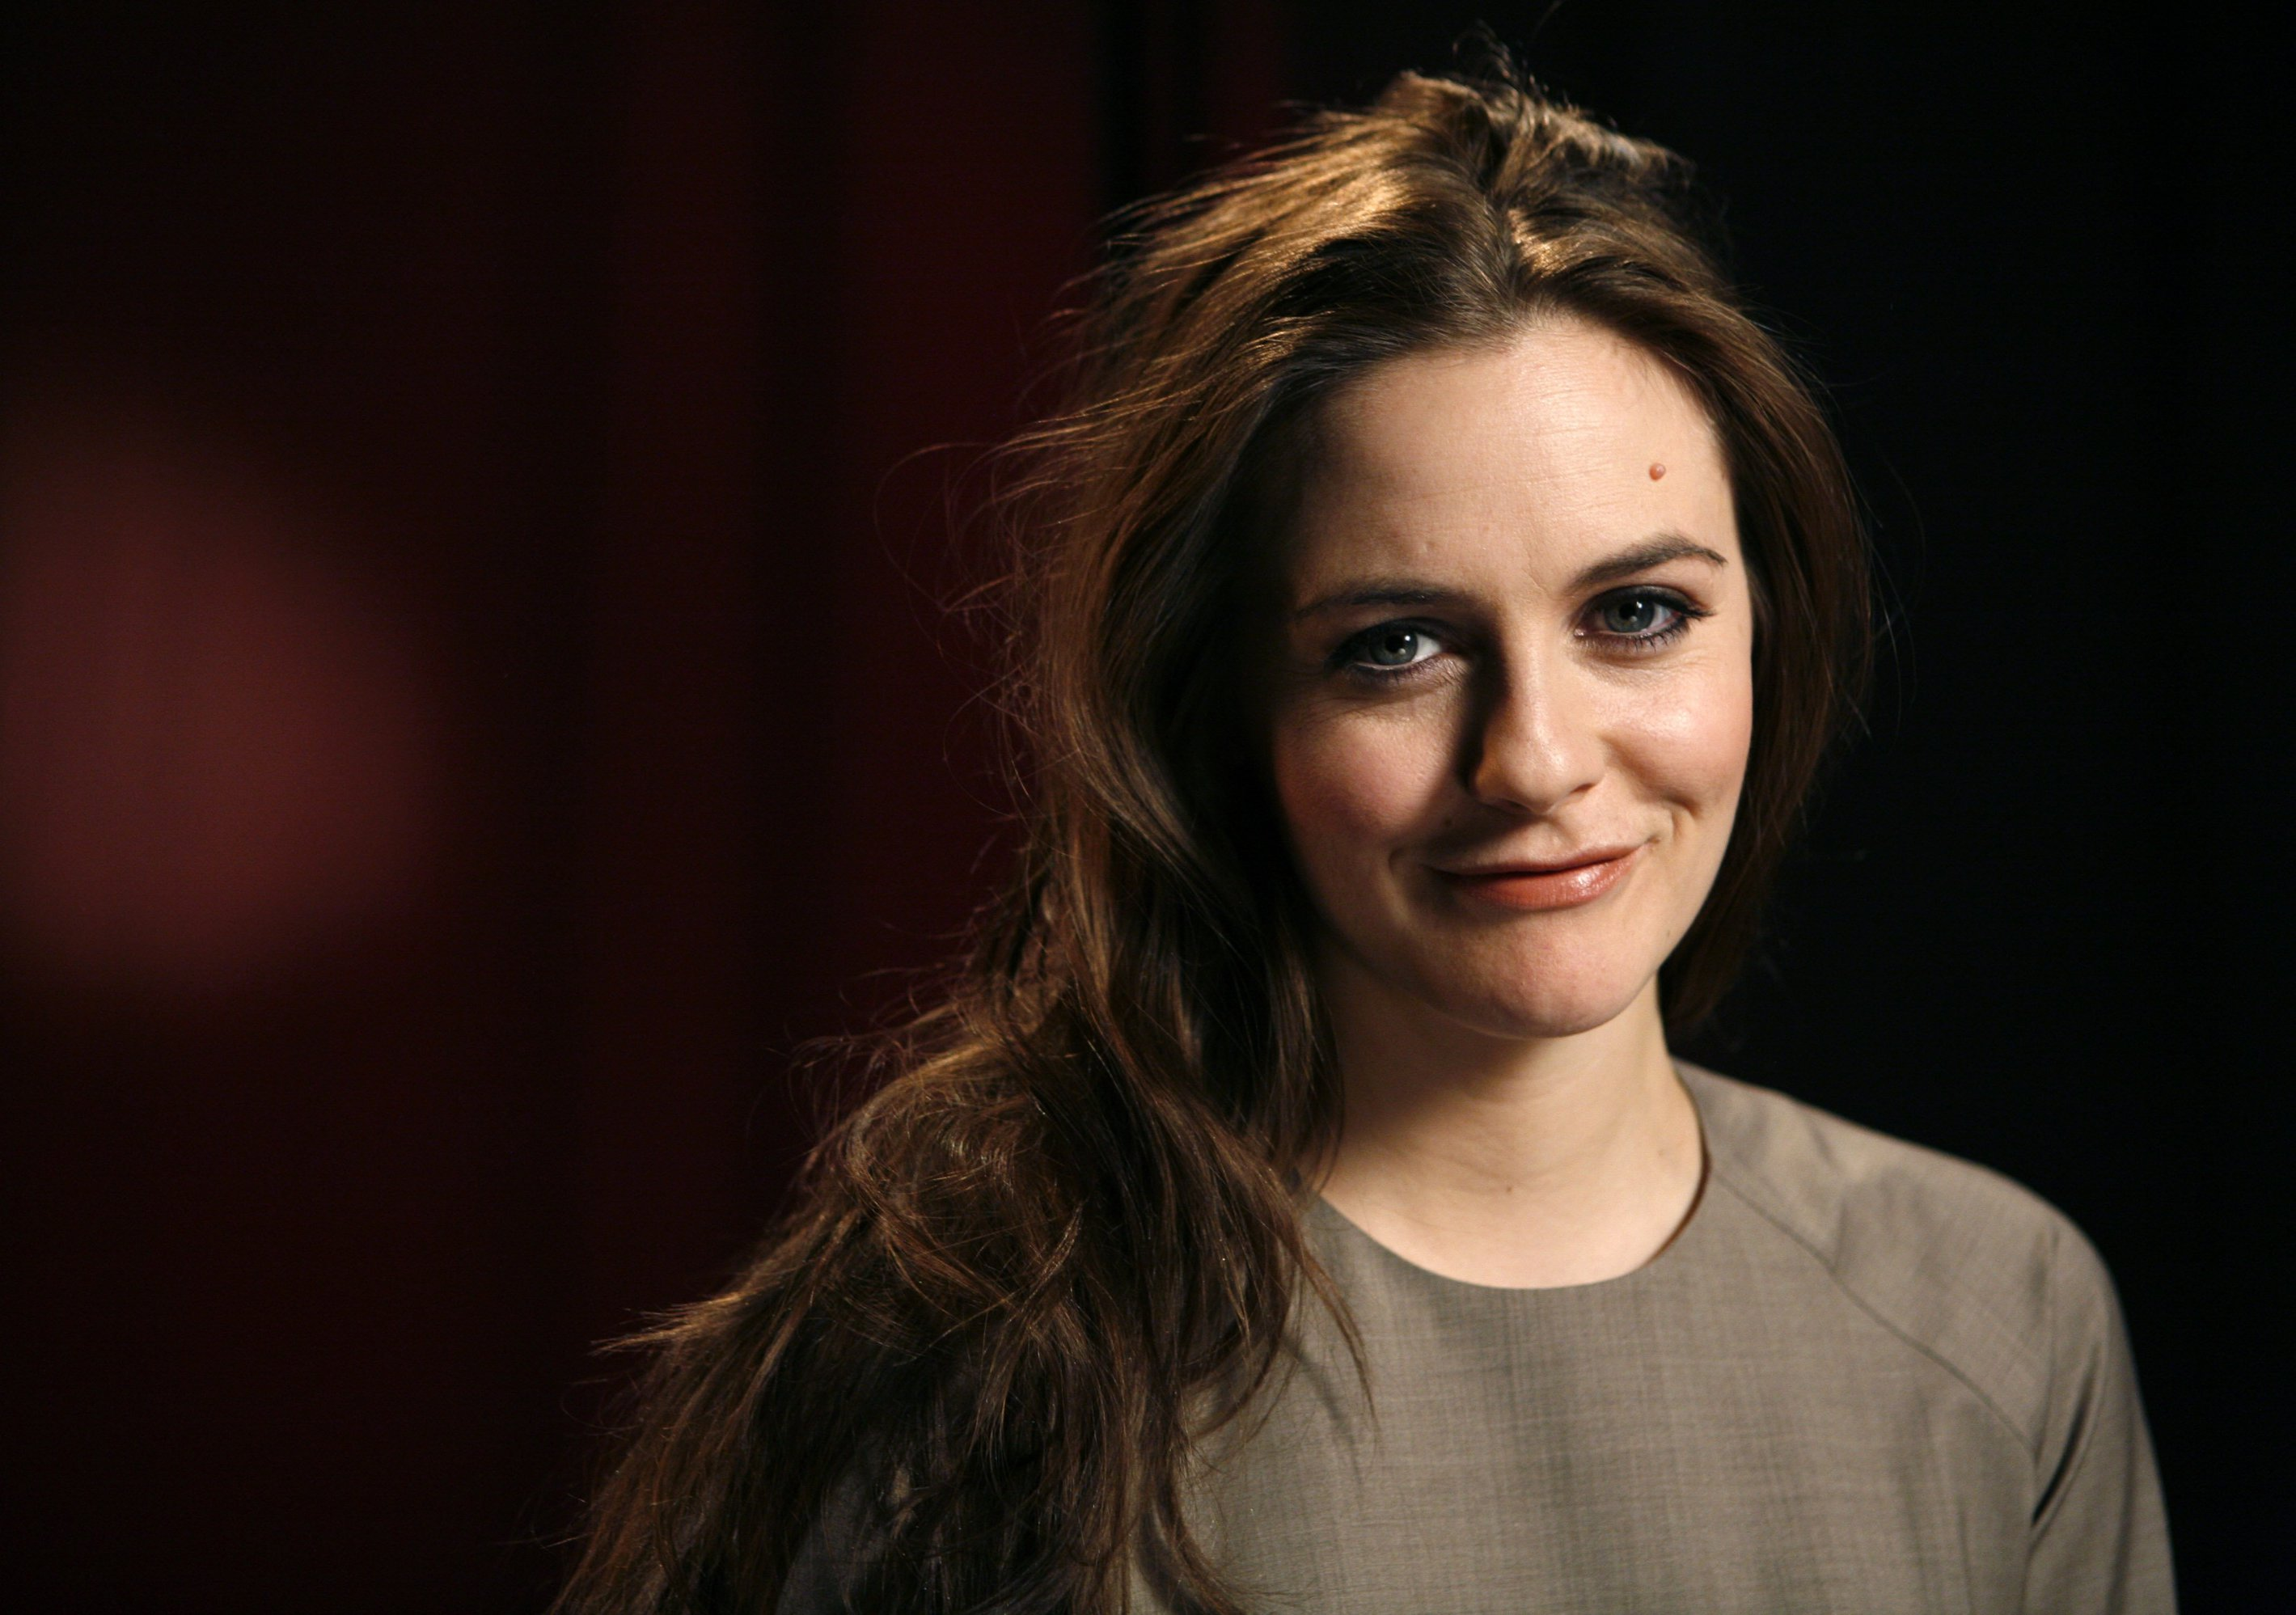 Alicia Silverstone JC portrait New York City on January 19, 2010